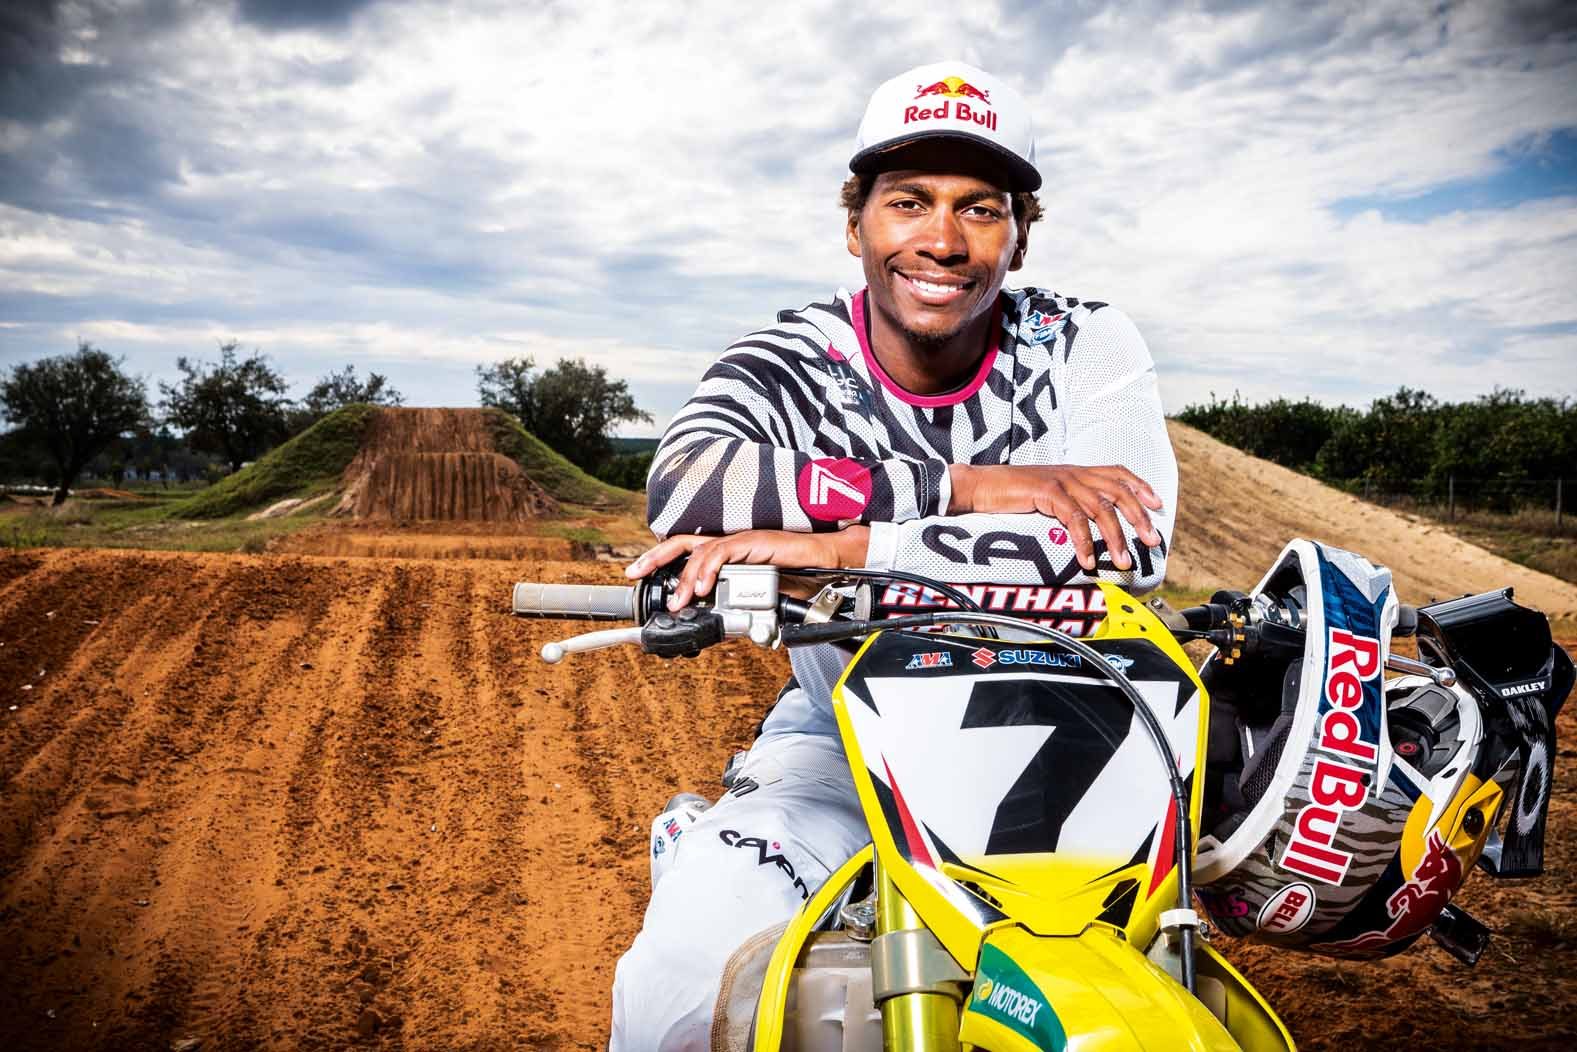 James Stewart poses for a portrait following a training session at his home track, the Ponderosa, in Haines City, FL, USA on 21 November, 2014. // Garth Milan/Red Bull Content Pool // P-20141203-00137 // Usage for editorial use only // Please go to www.redbullcontentpool.com for further information. //